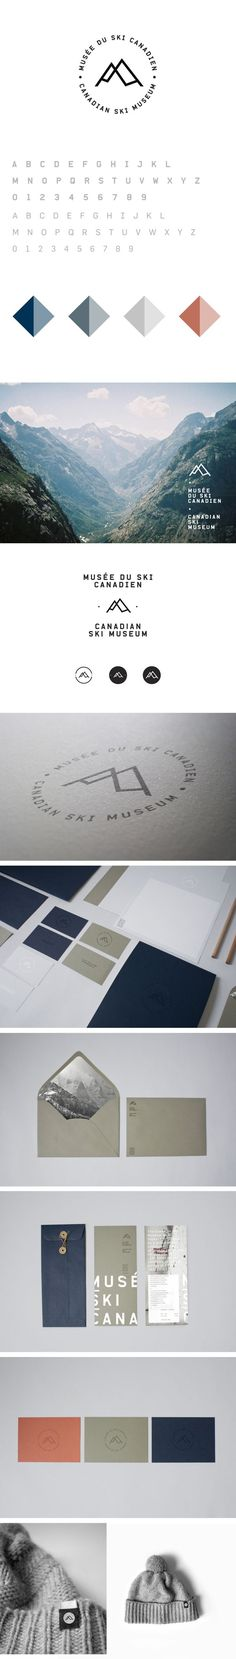 New brand identity and design for the Canadian Ski Museum